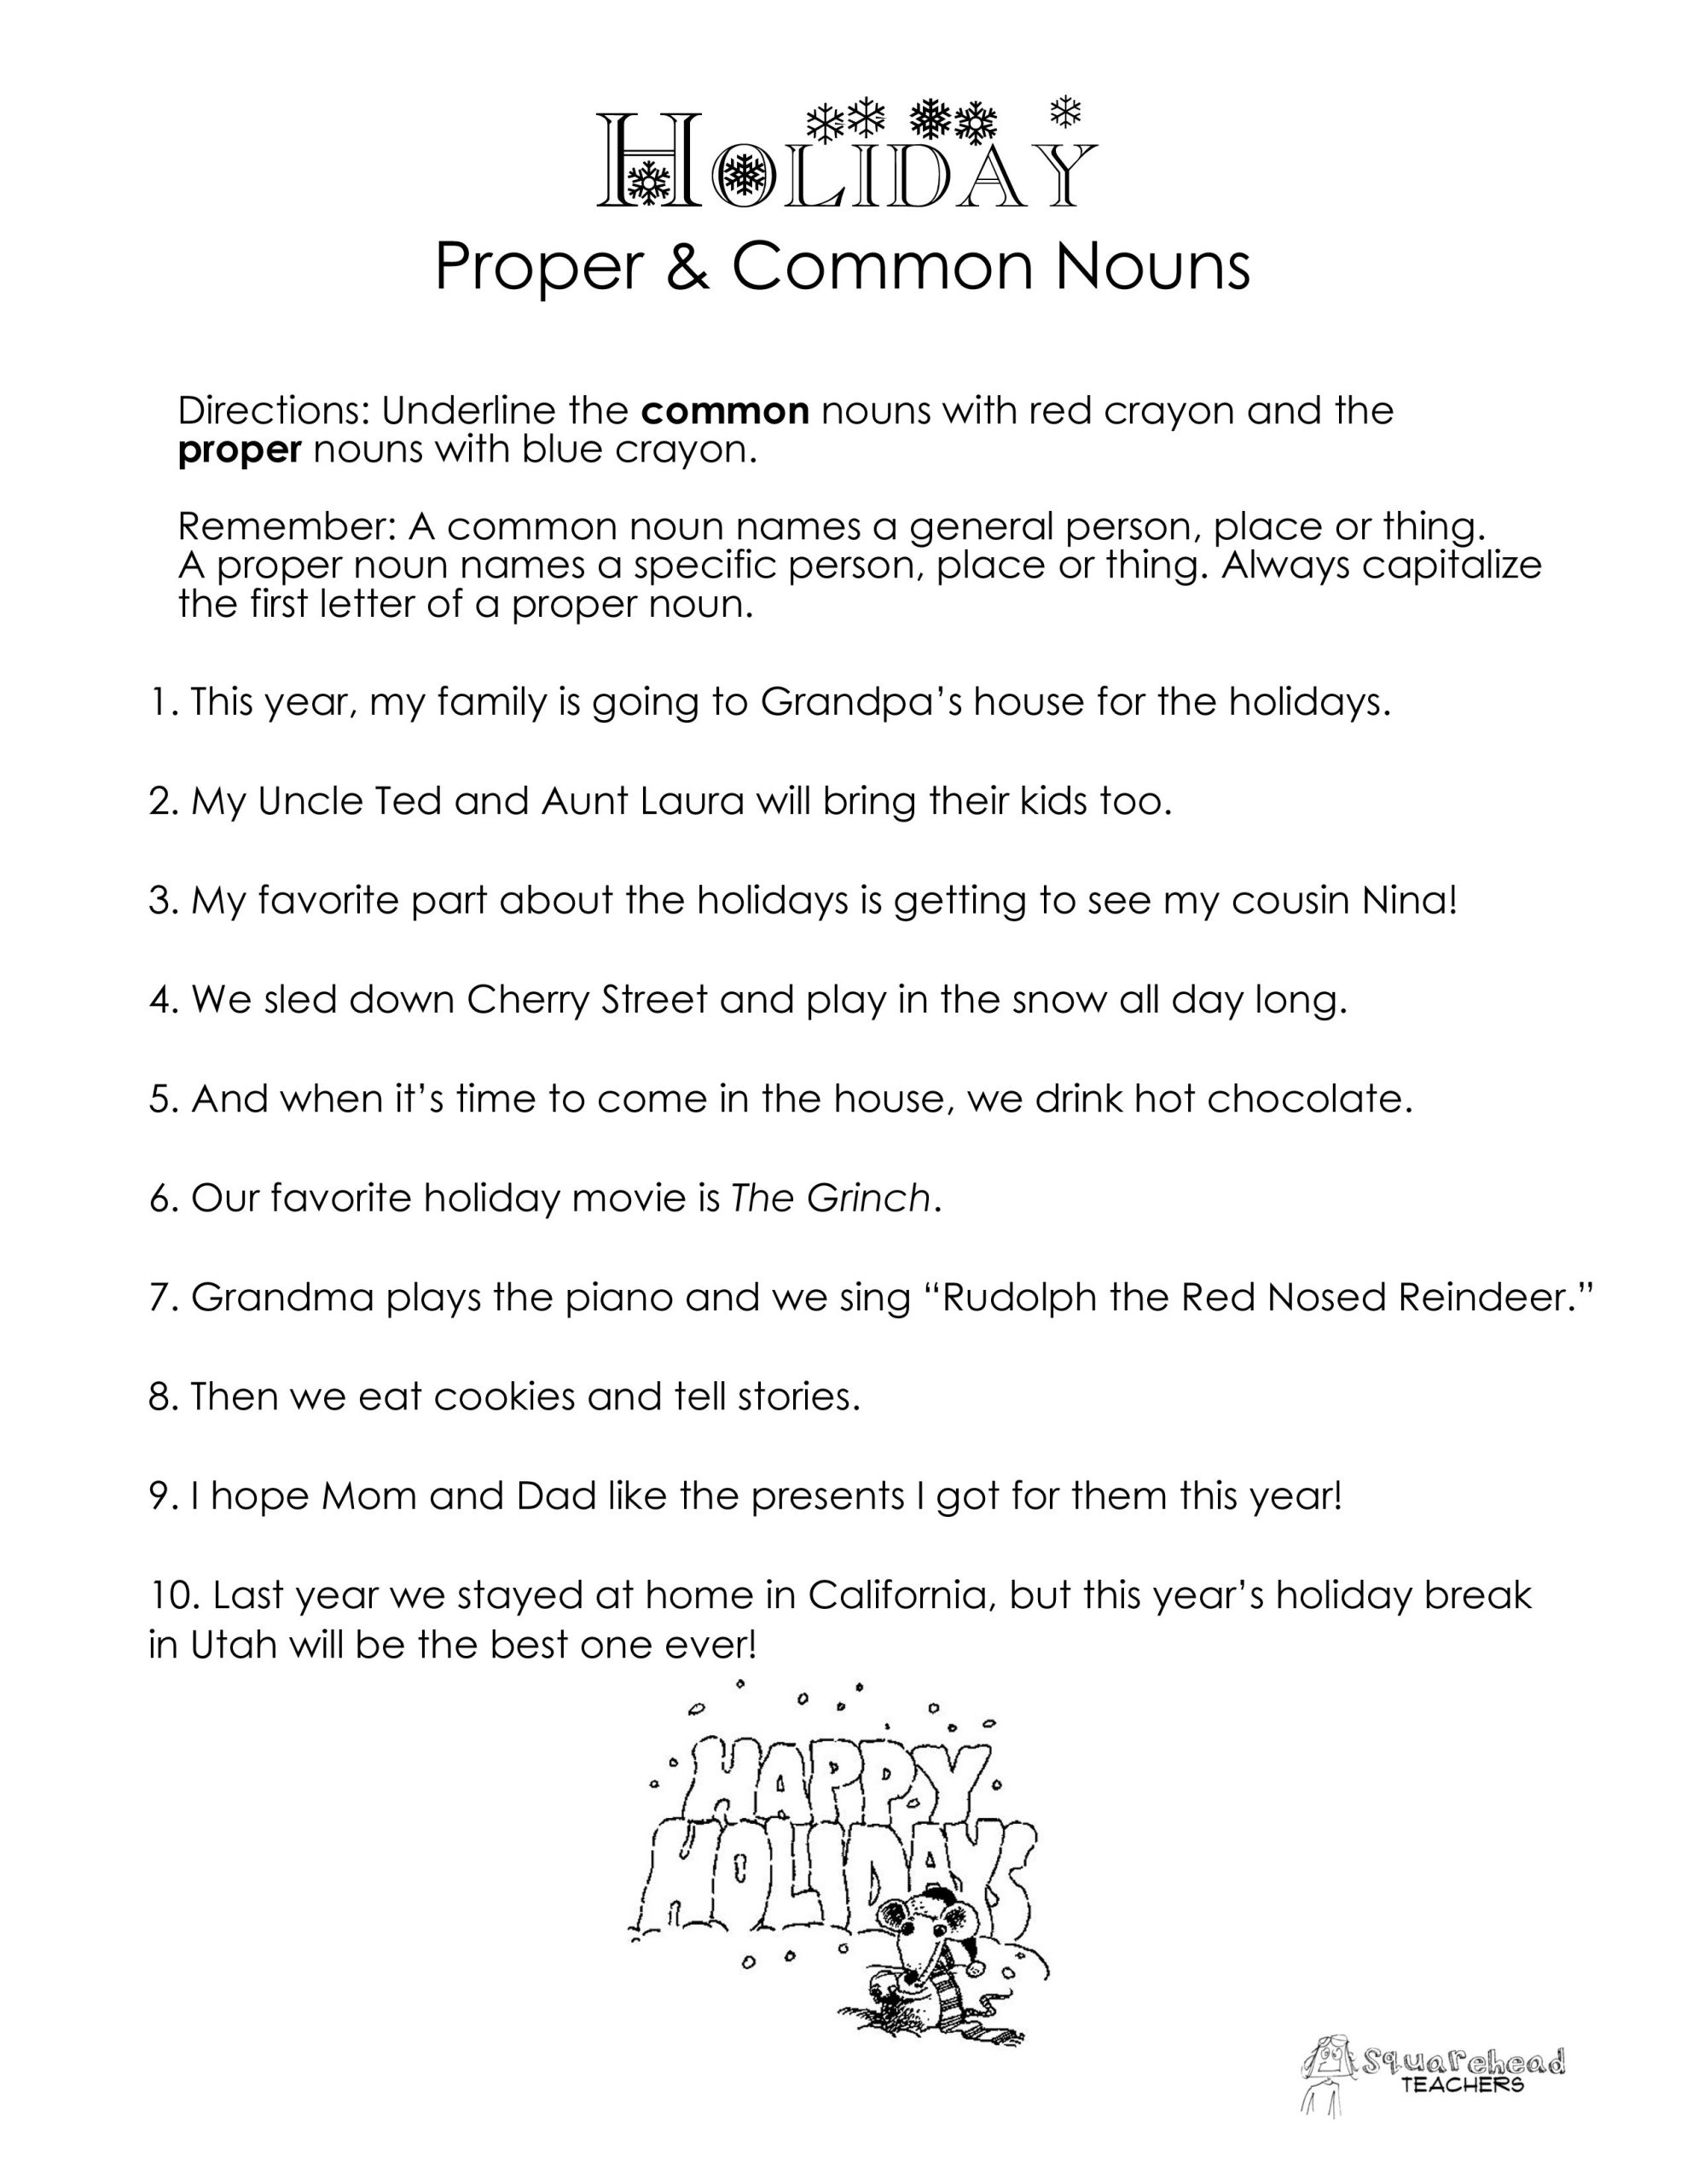 Proper Nouns Worksheet 2nd Grade Mon Vs Proper Nouns Christmas Winter Holidays Worksheet